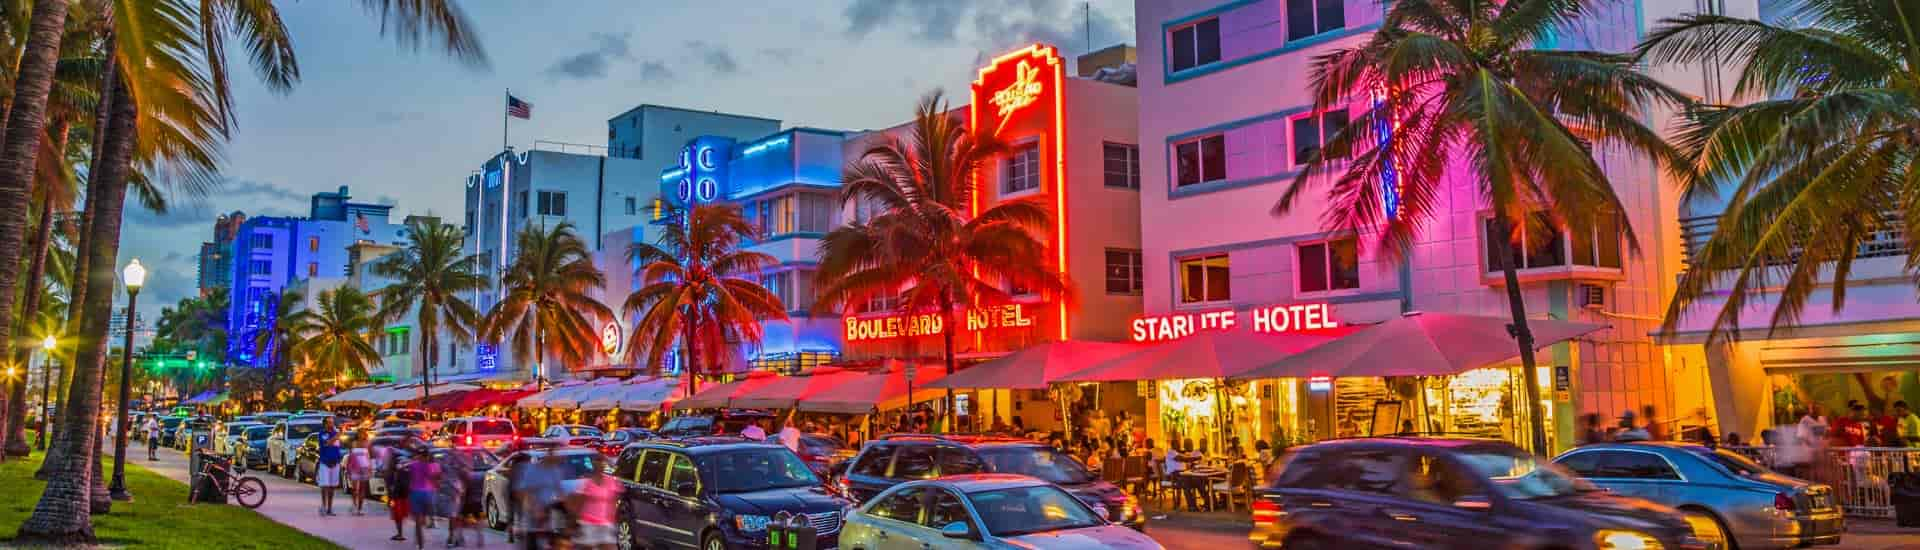 miami life Miami Life south beach miami ocean drive neon 1920x550